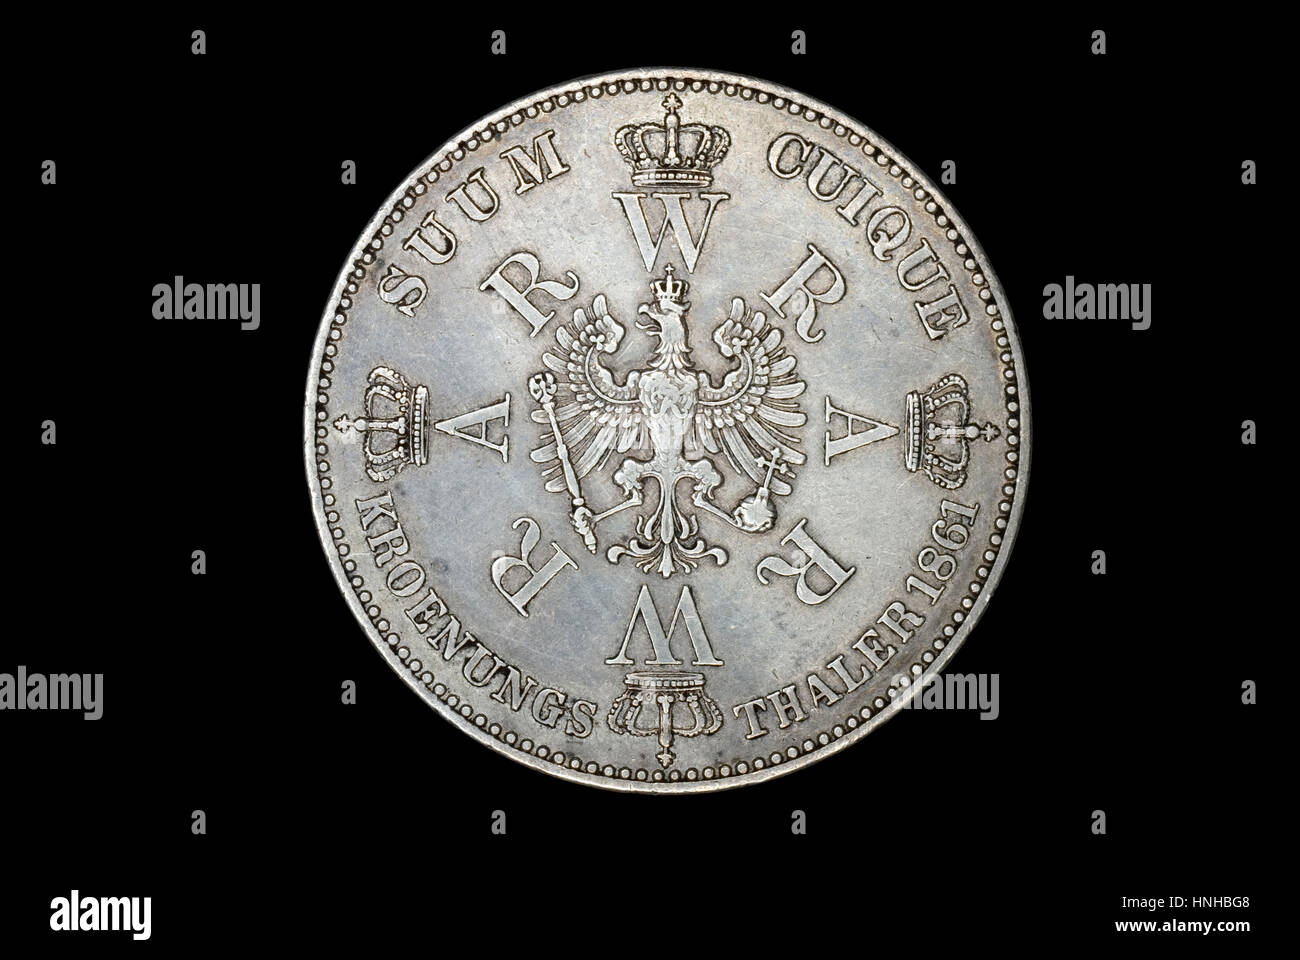 Coin Commemorating Coronation of Wilhelm I and Augusta - Stock Image